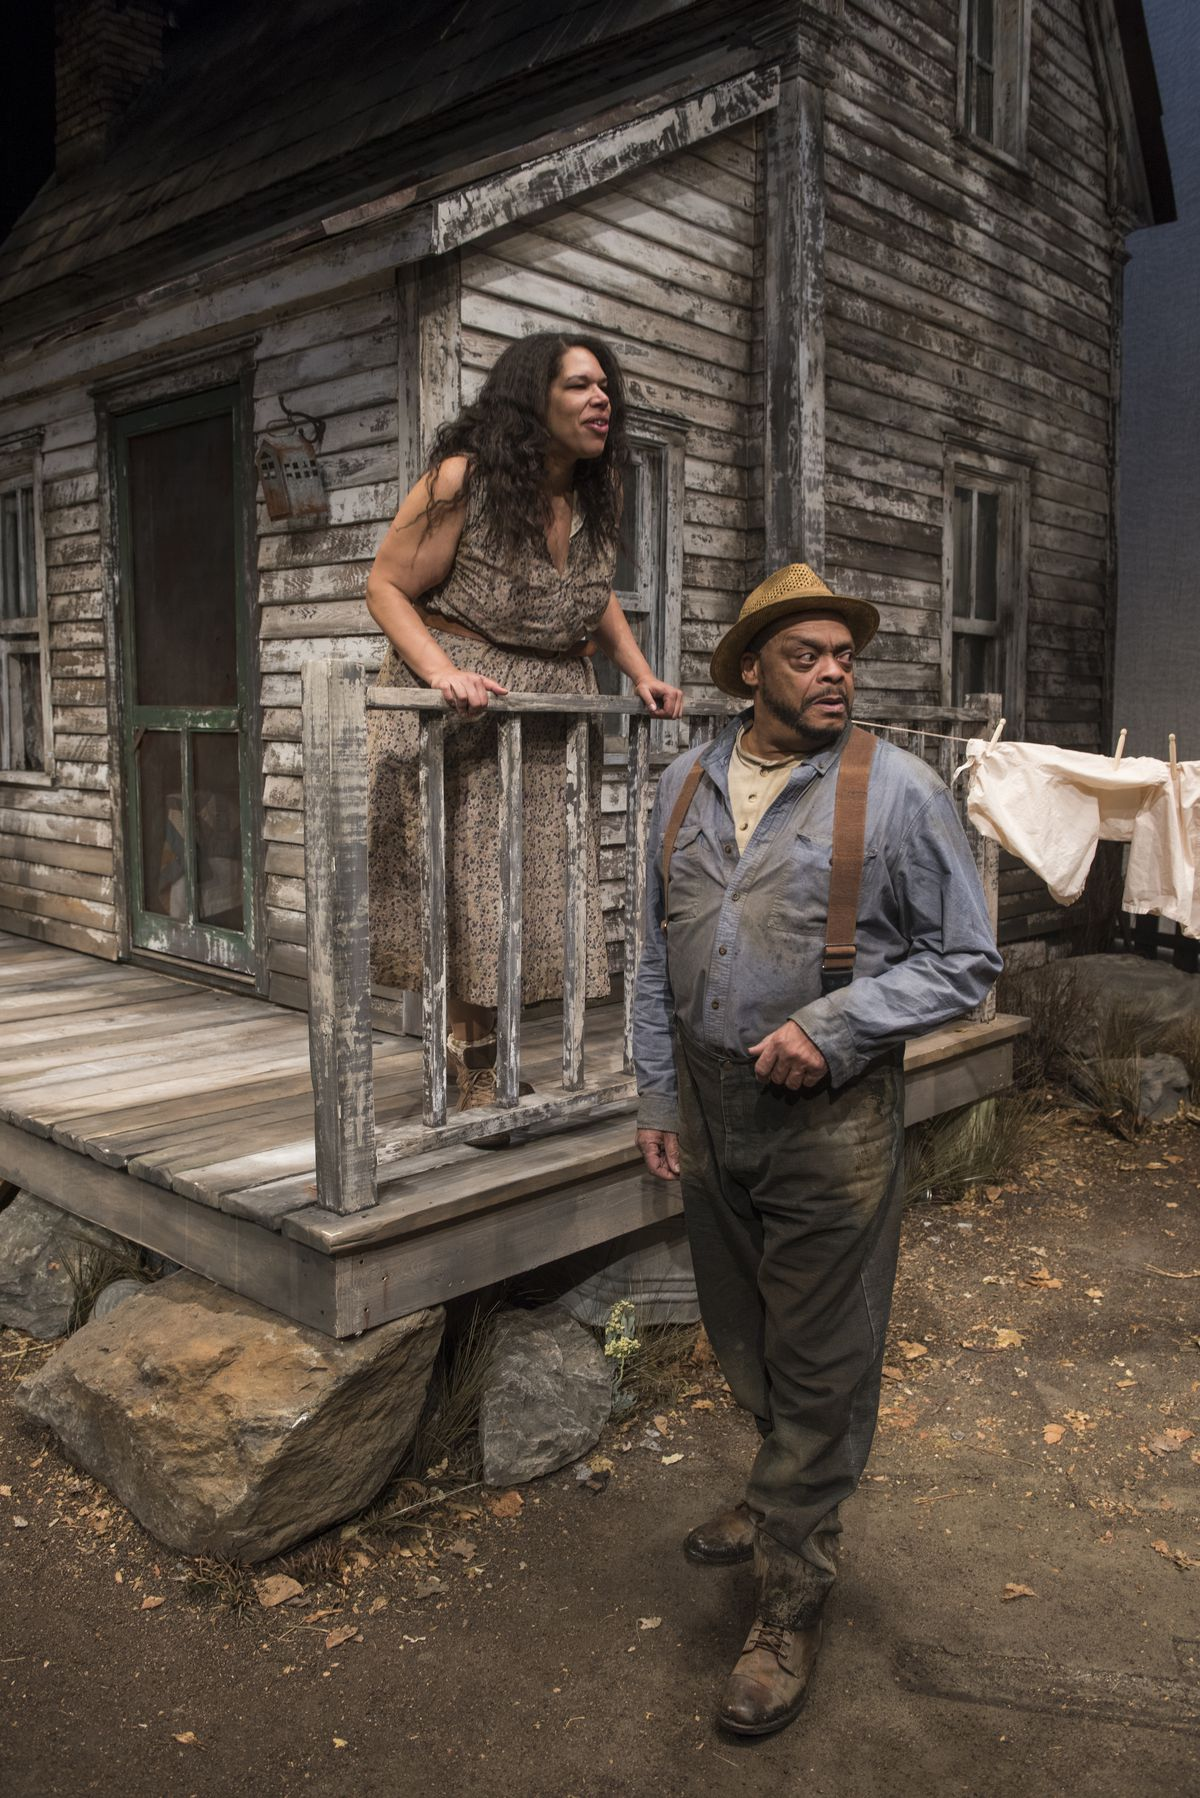 """Josie (Bethany Thomas) and her father Phil (A.C. Smith) are caught up in the turmoil of """"A Moon for the Misbegotten,"""" directed by William Brown at Writers Theatre in 2018."""